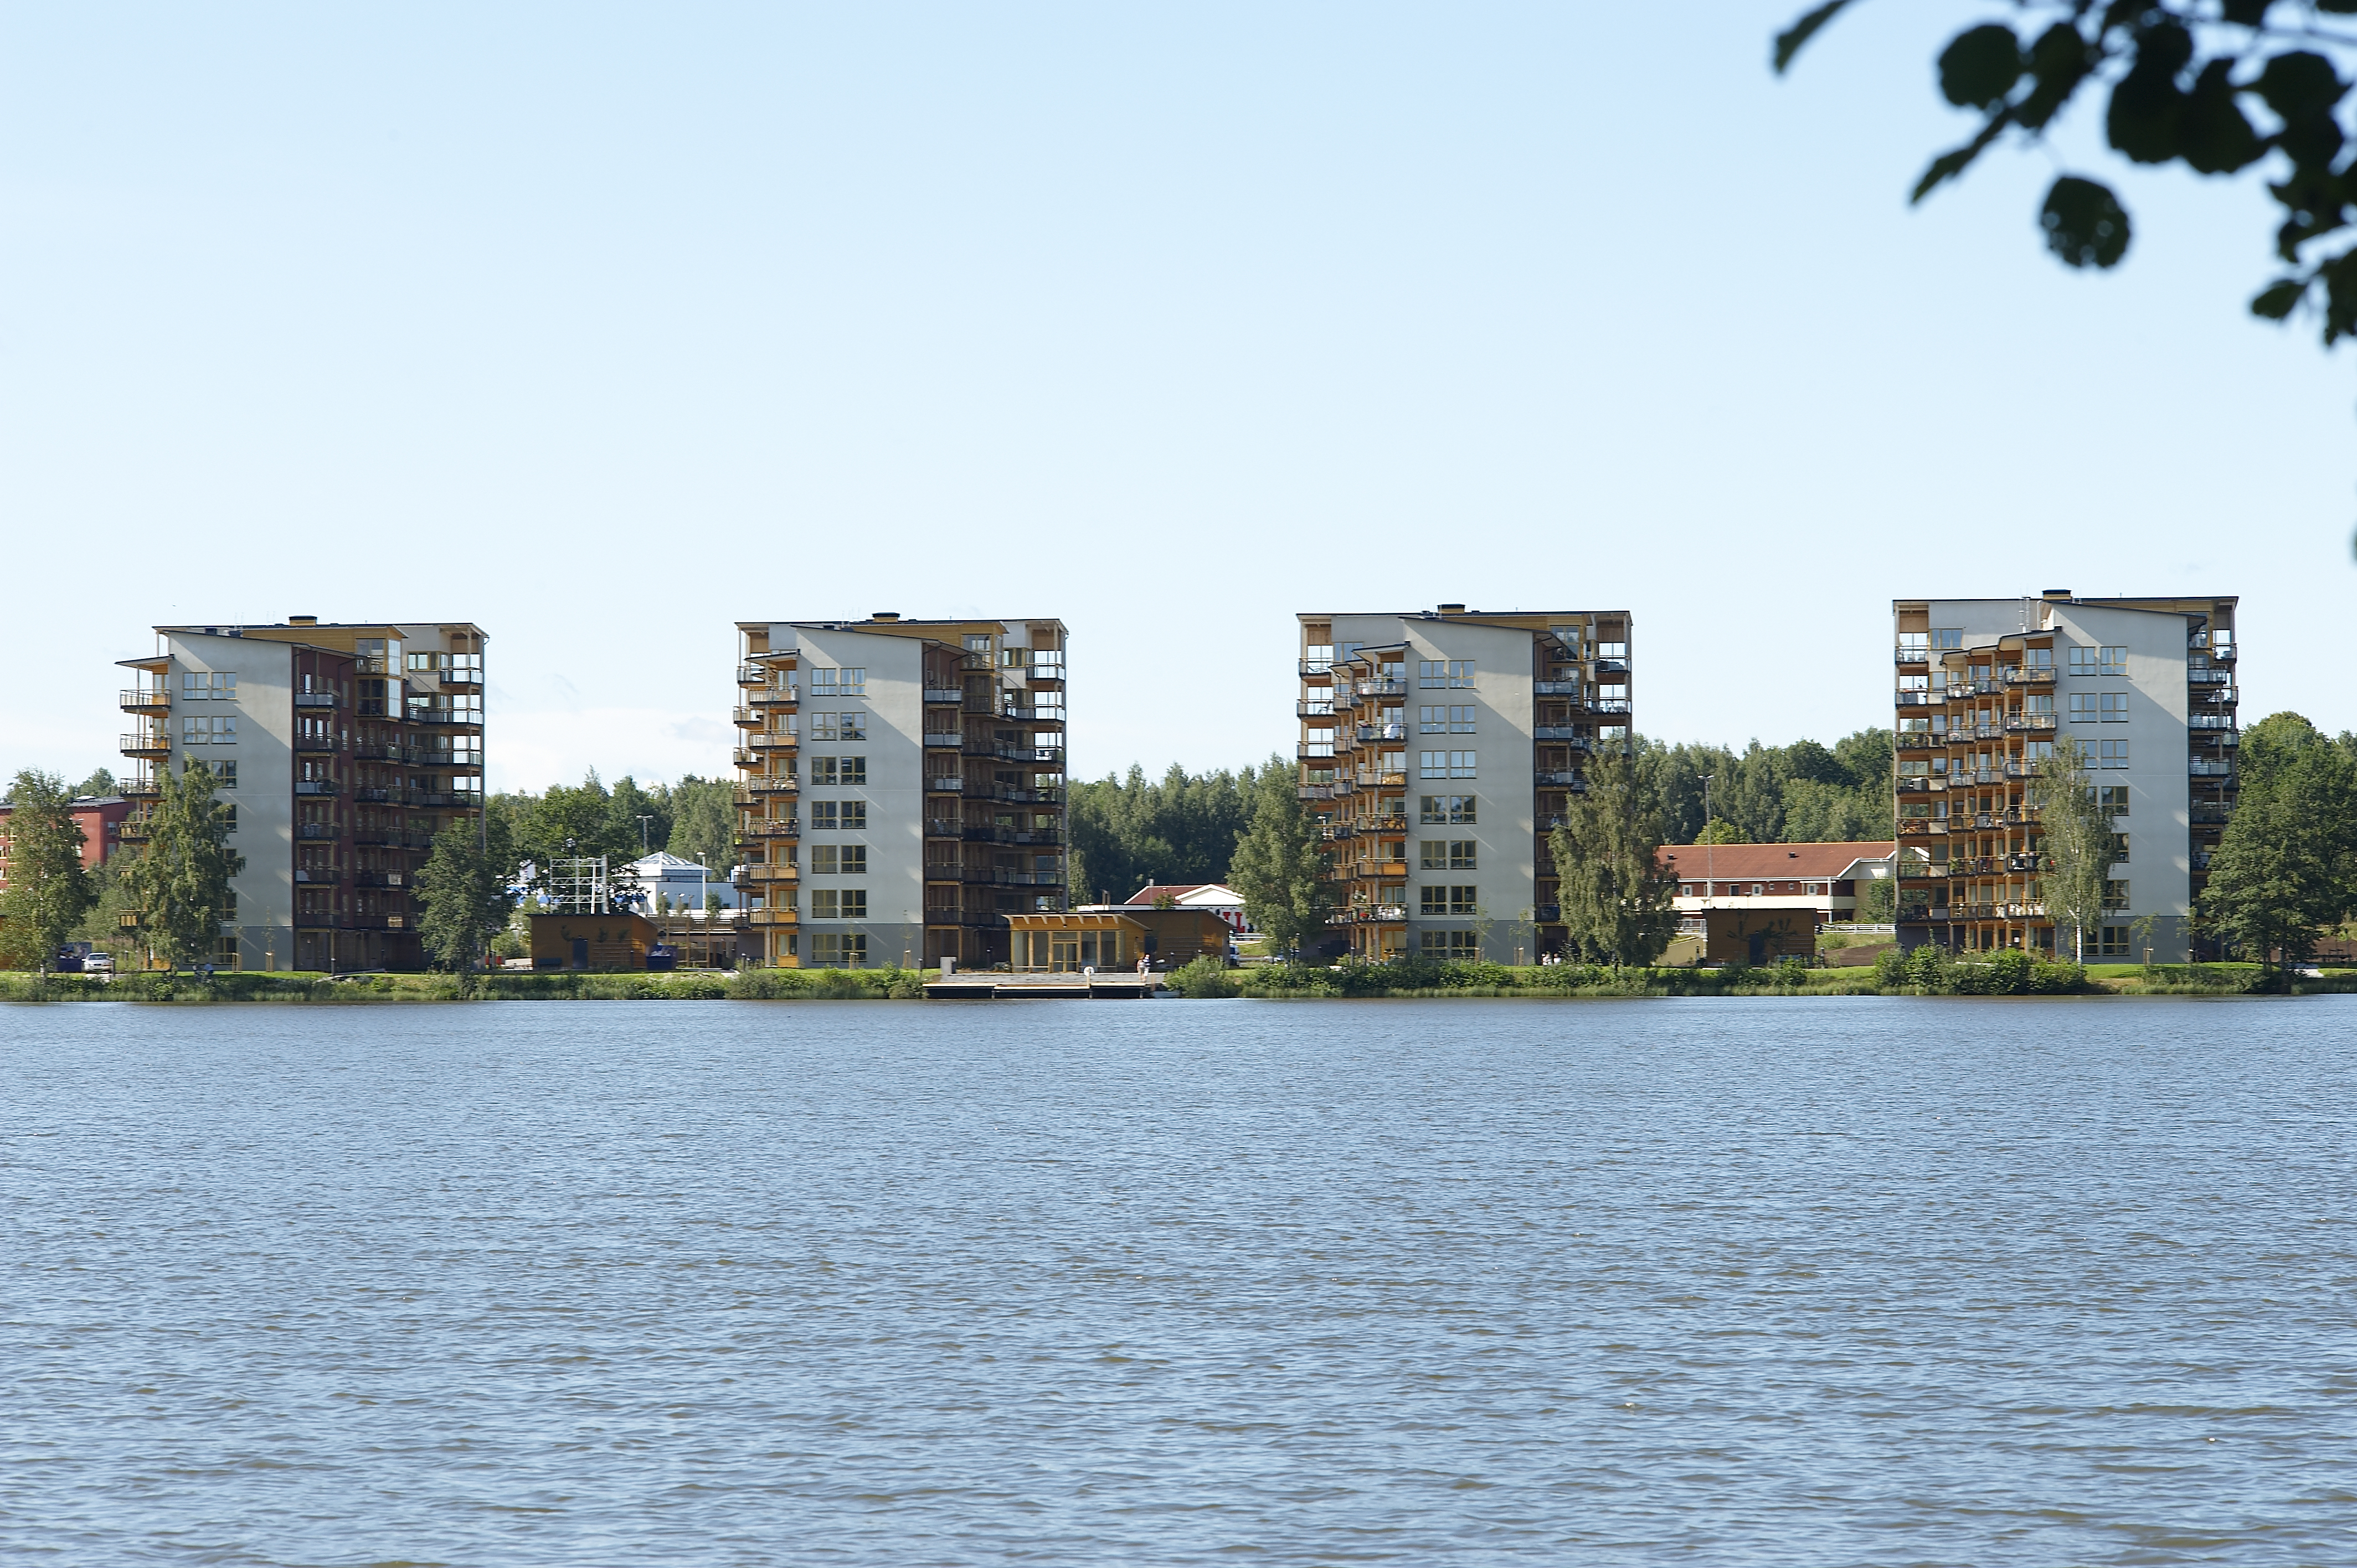 CLT apartment buildings in Vaxjo, Sweden